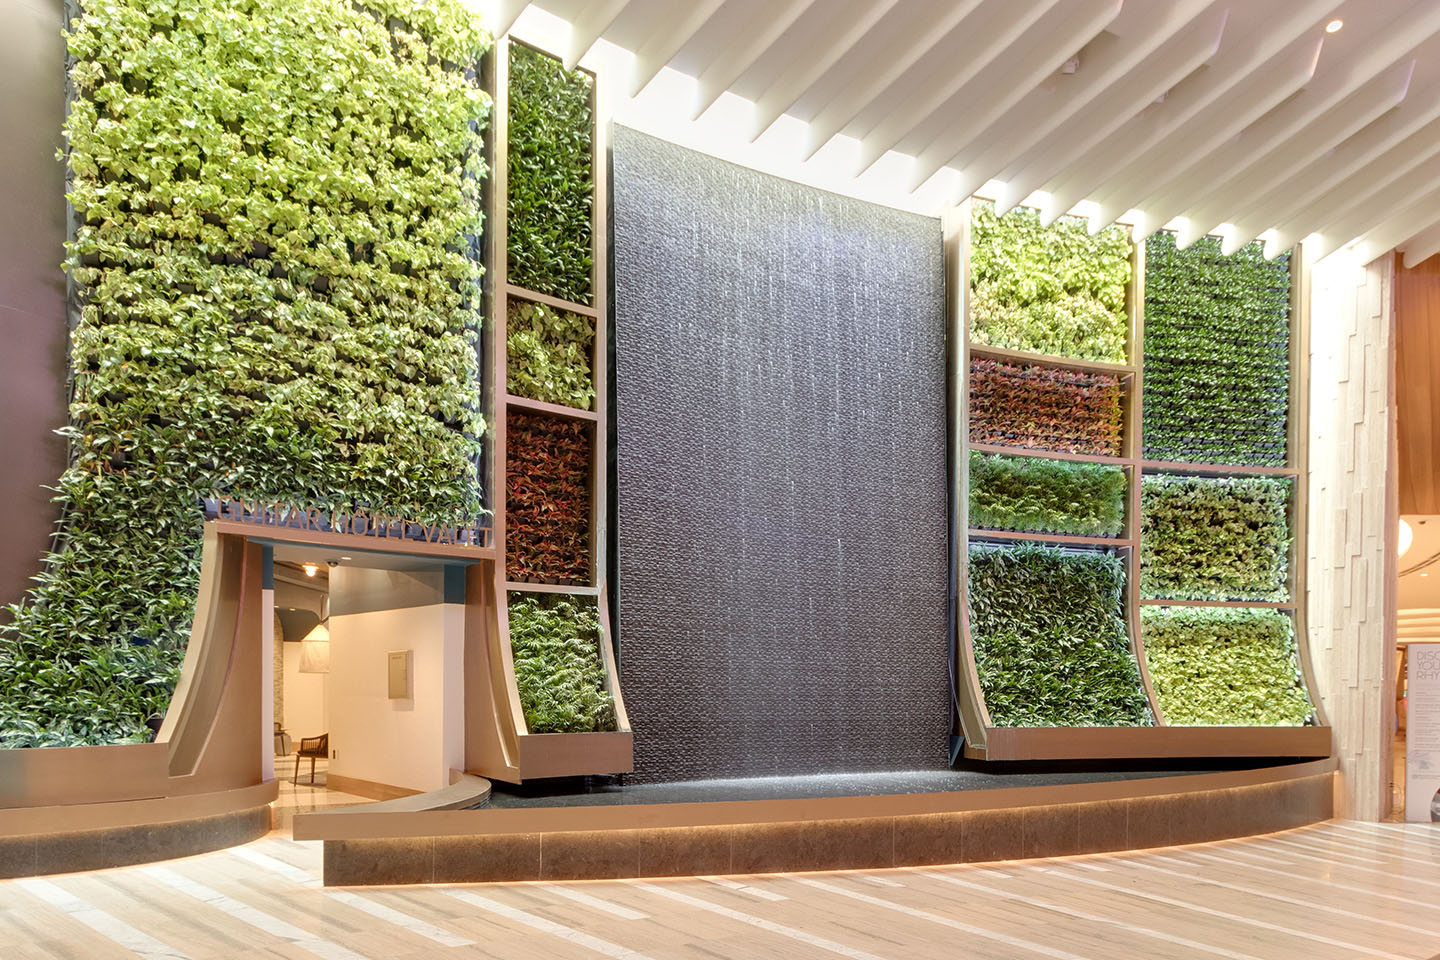 AgroSci Greenwall Installation at The Oculus